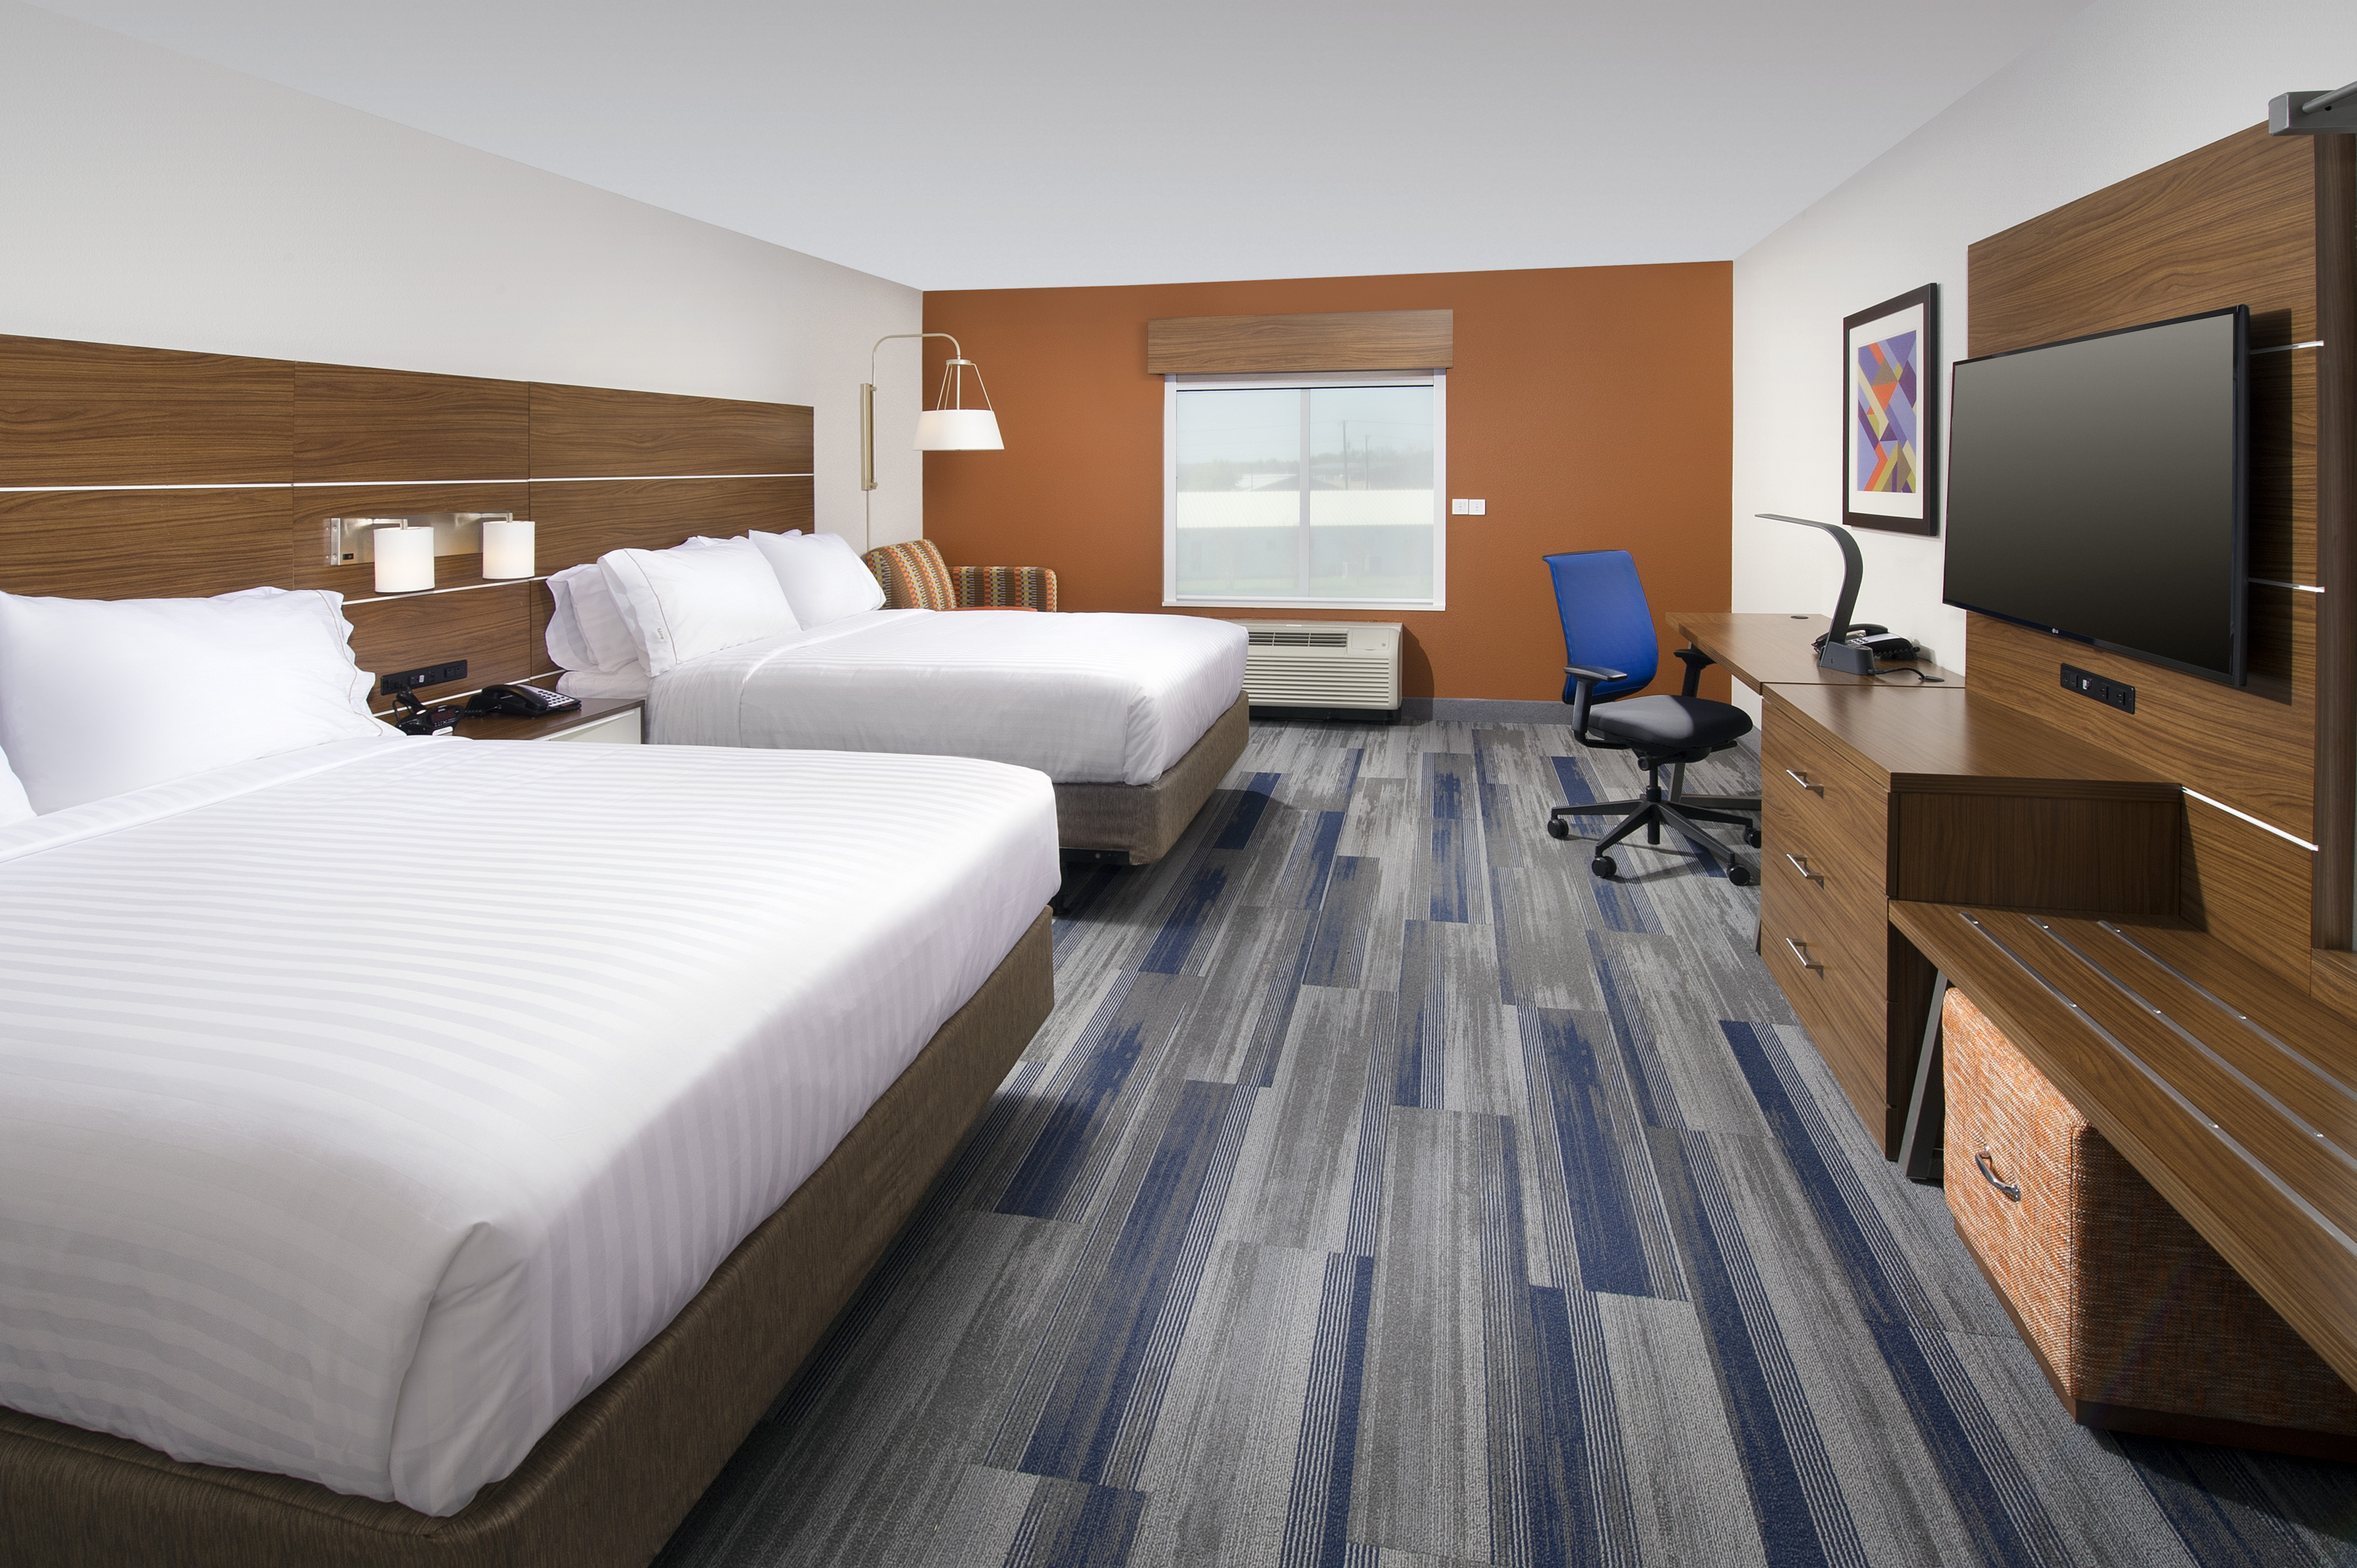 New Braunfels TX Hotel Rooms at Holiday Inn Express Suites New